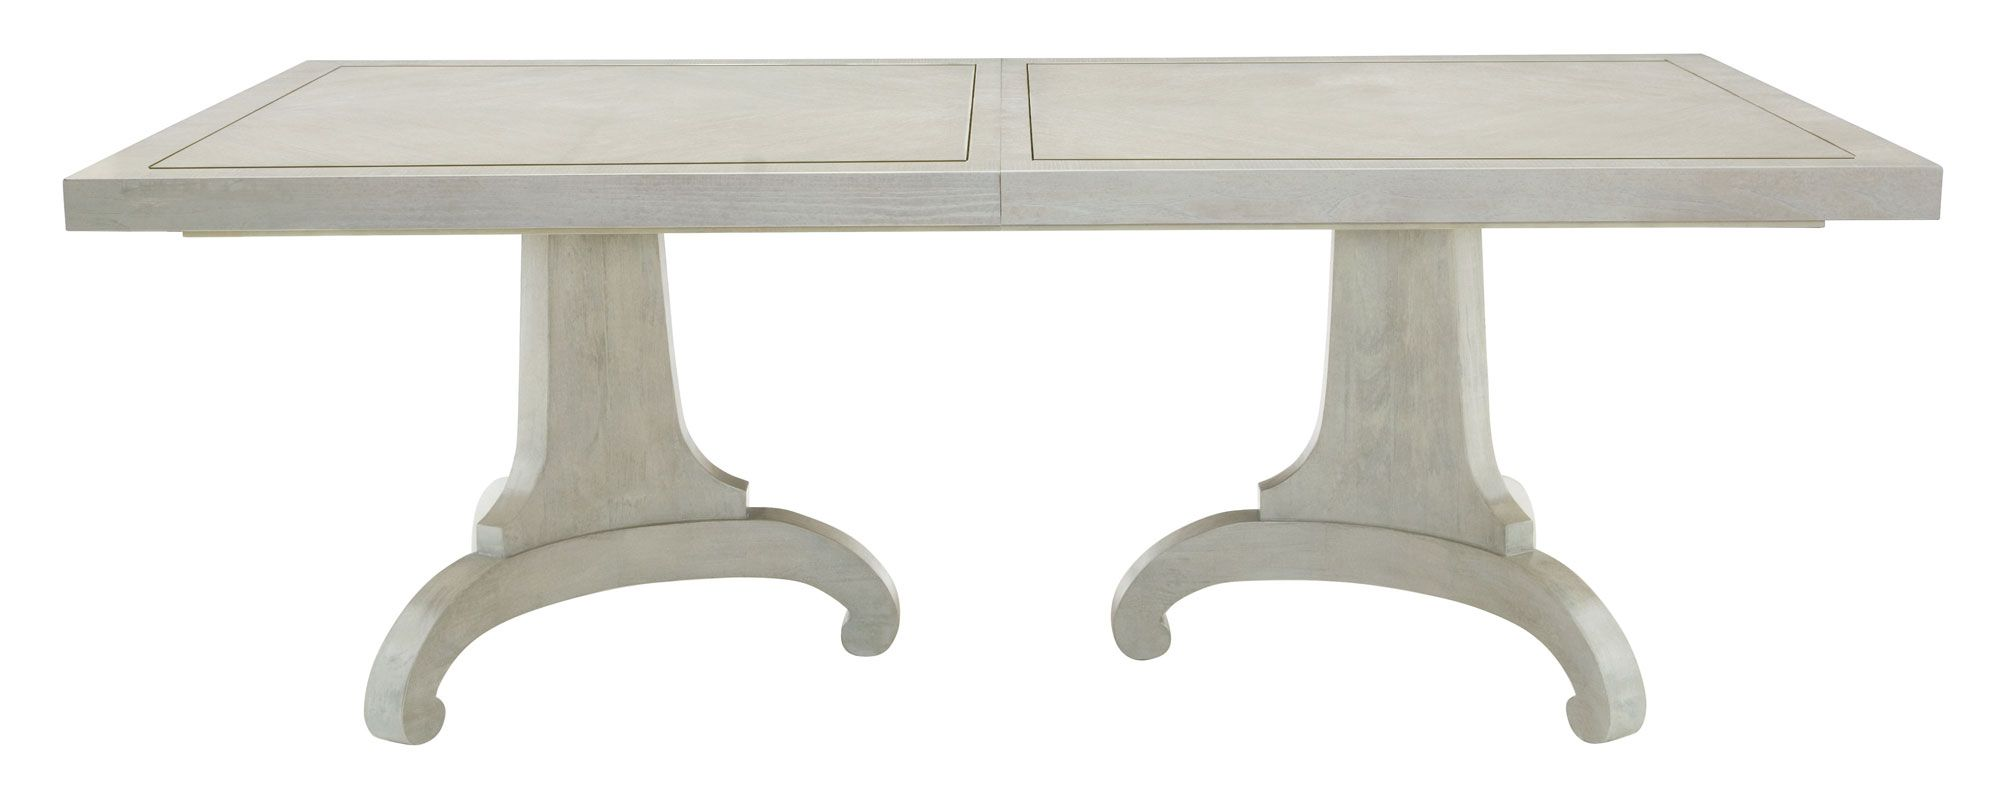 Dining Table Bernhardt 86 X44 Ash Solids And Quartered